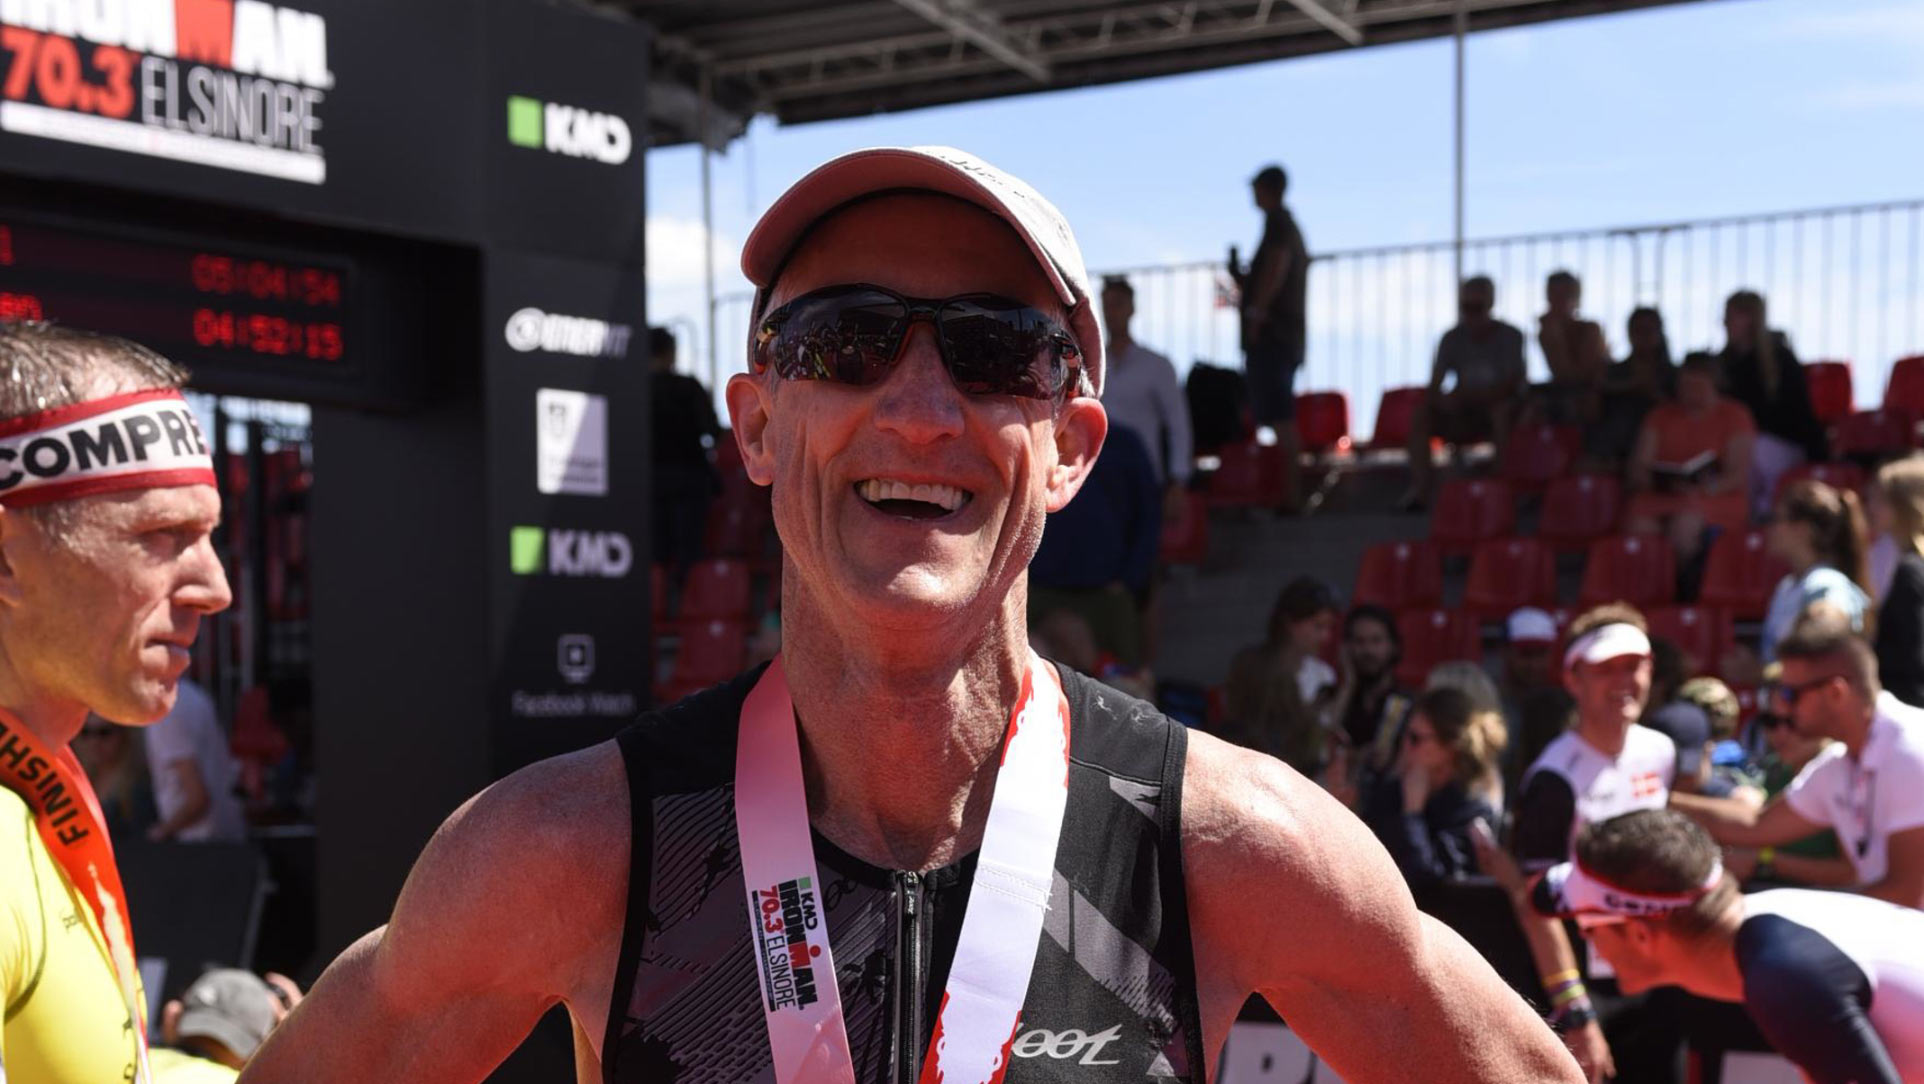 Doug smiles widely after receiving a medal at a triathlon. He is wearing a black unitard, sunglasses, and a baseball hat.